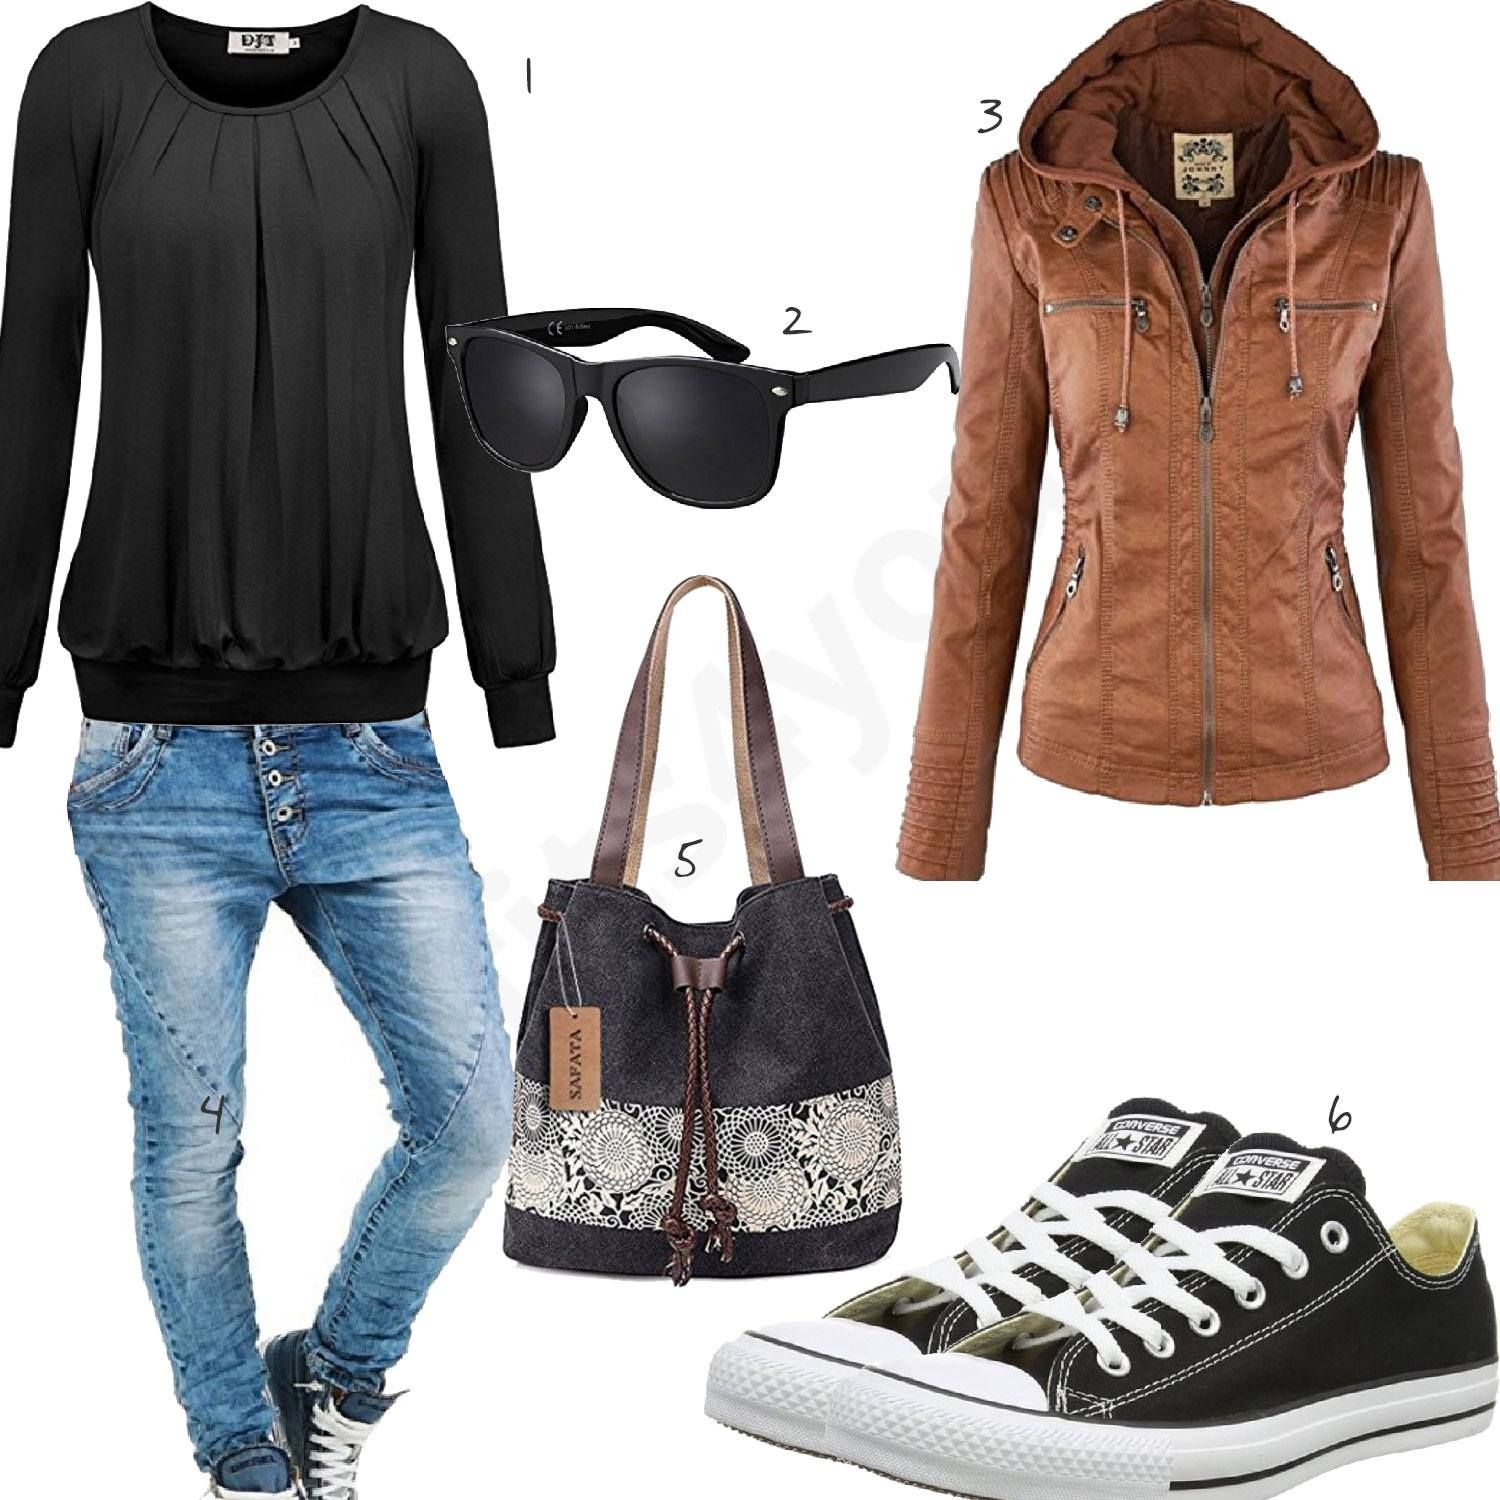 schwarzes damen outfit mit lederjacke w0338 moda preppy moda ropa y informal. Black Bedroom Furniture Sets. Home Design Ideas